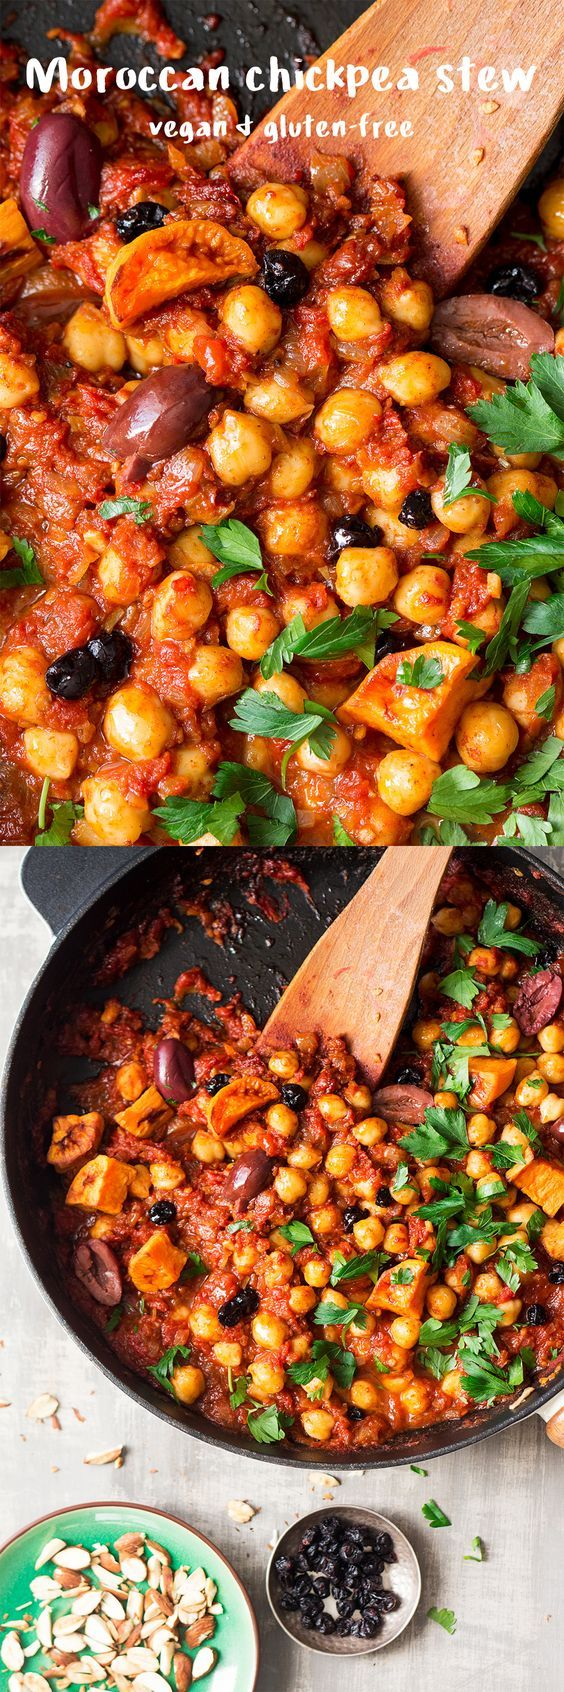 Moroccan Chickpea Stew Come and see our new website at bakedcomfortfood.com!